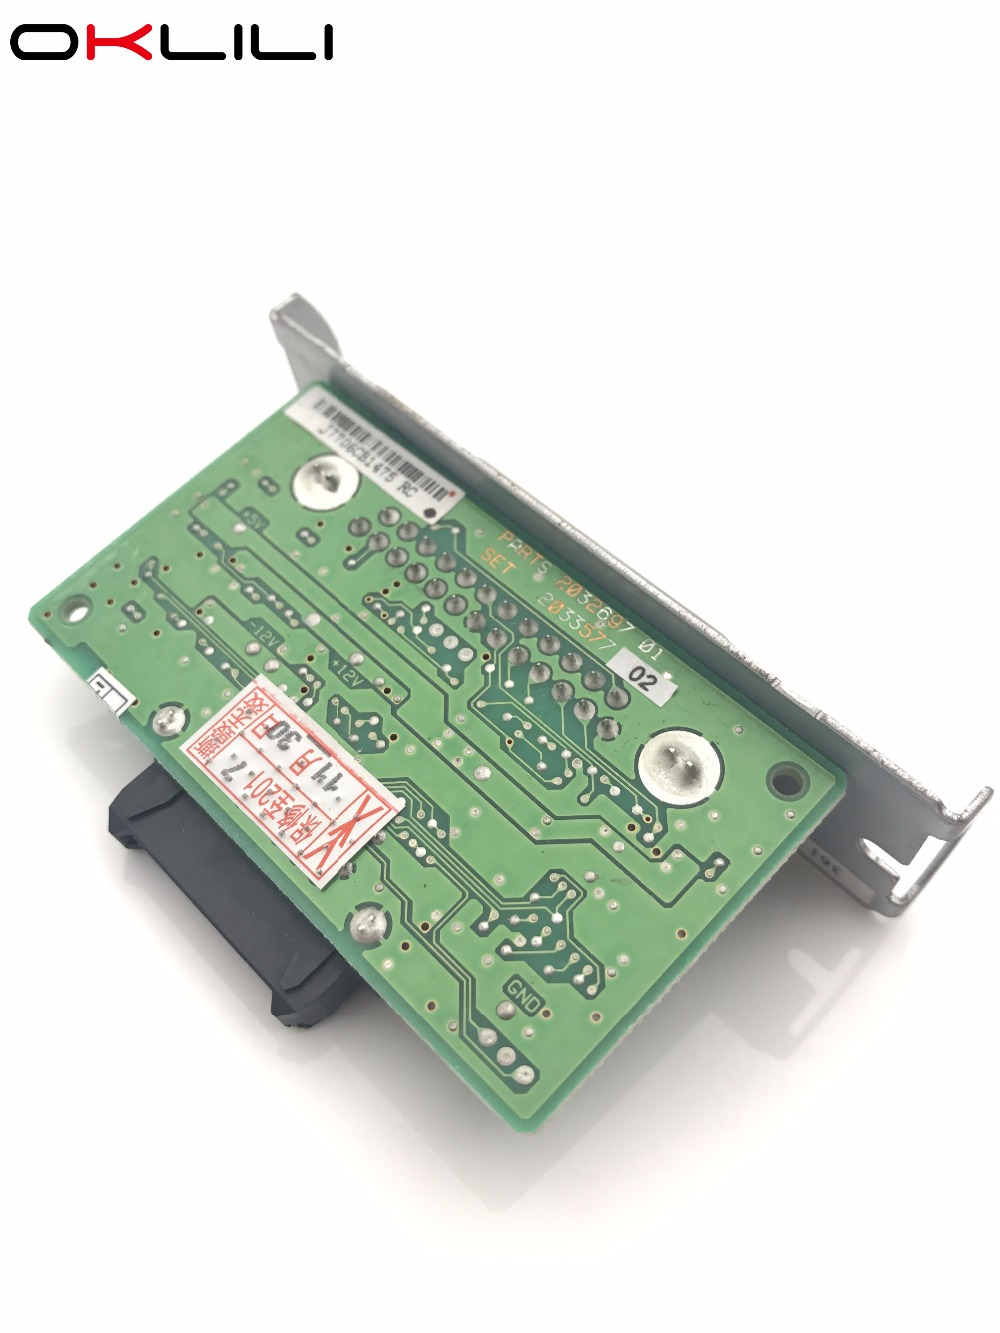 Epson M111A RS-232 UB-S01 C823361 Printer Serial Interface Adapter Card